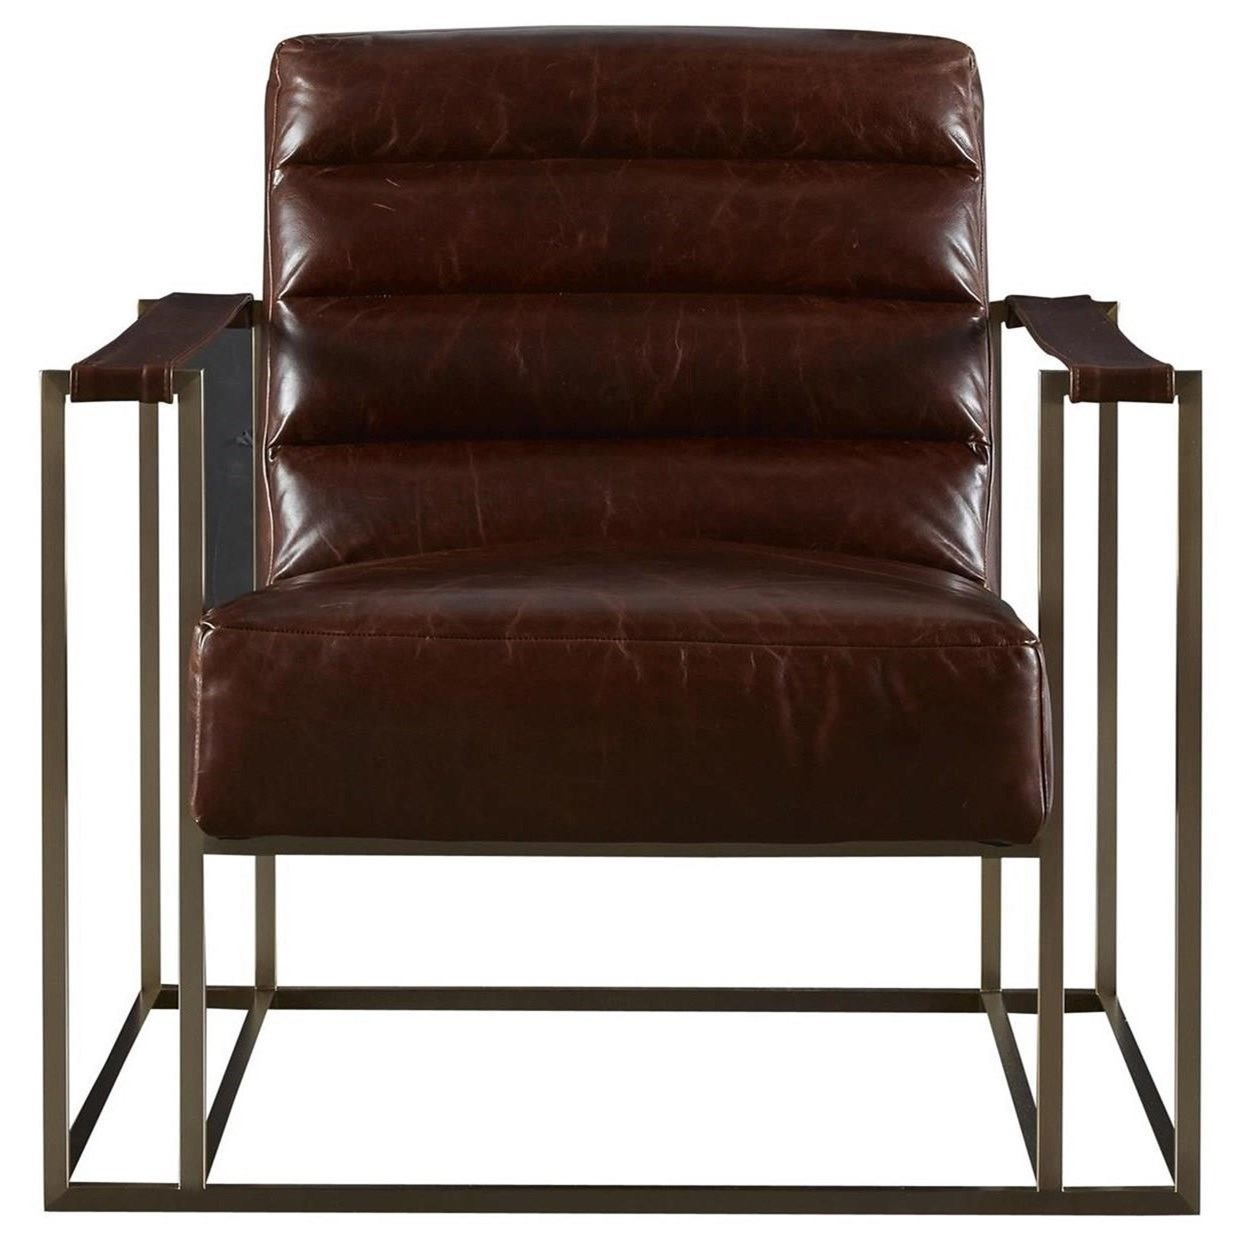 Accents Accent Chair by Universal at Baer's Furniture